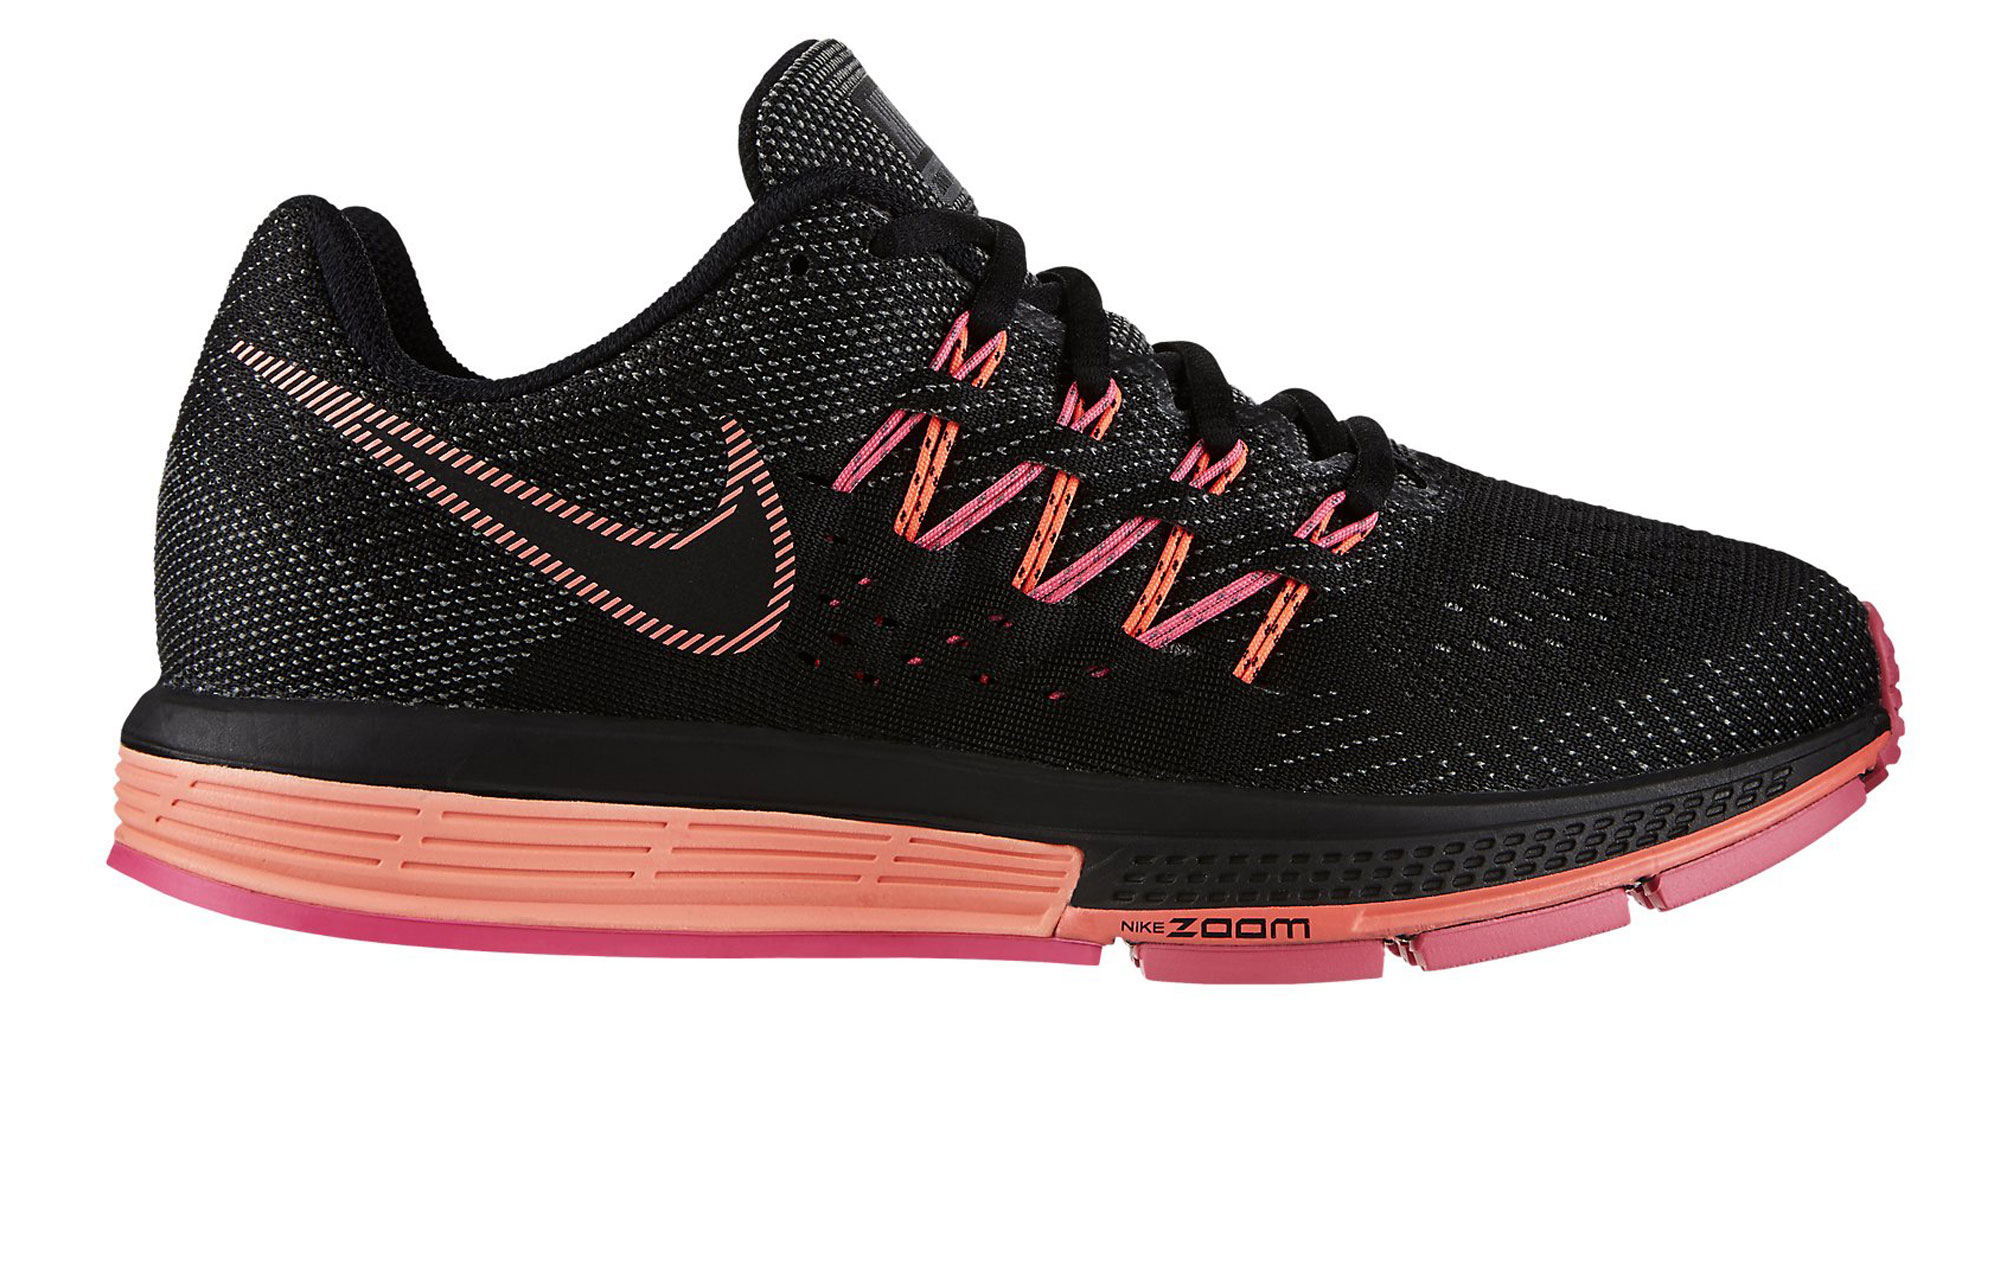 136fc07043f67 NIKE Shoes AIR ZOOM VOMERO 10 Pink Black Women